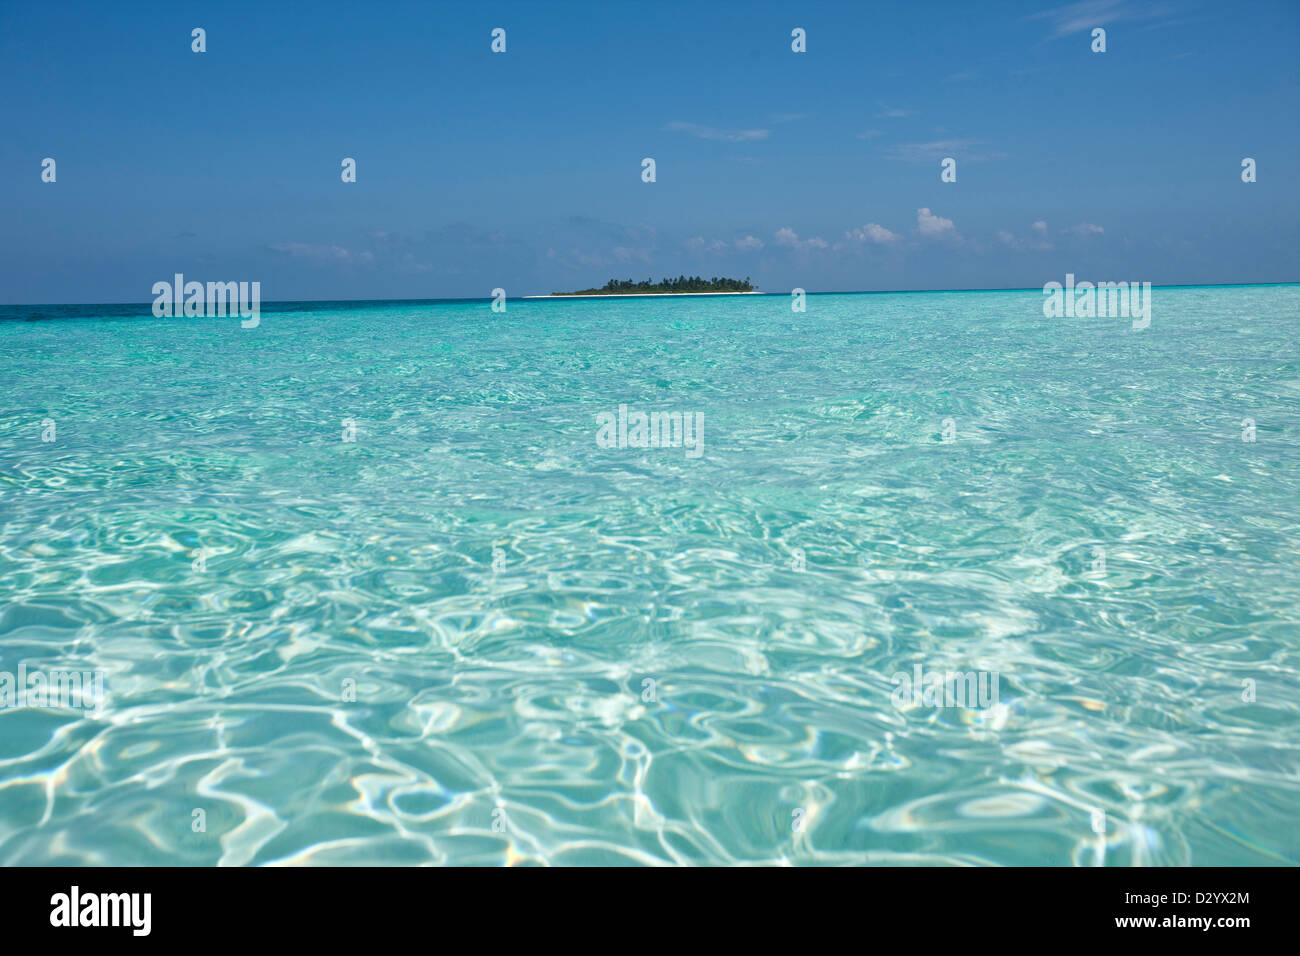 Desert island and water refraction, Maldives - Stock Image